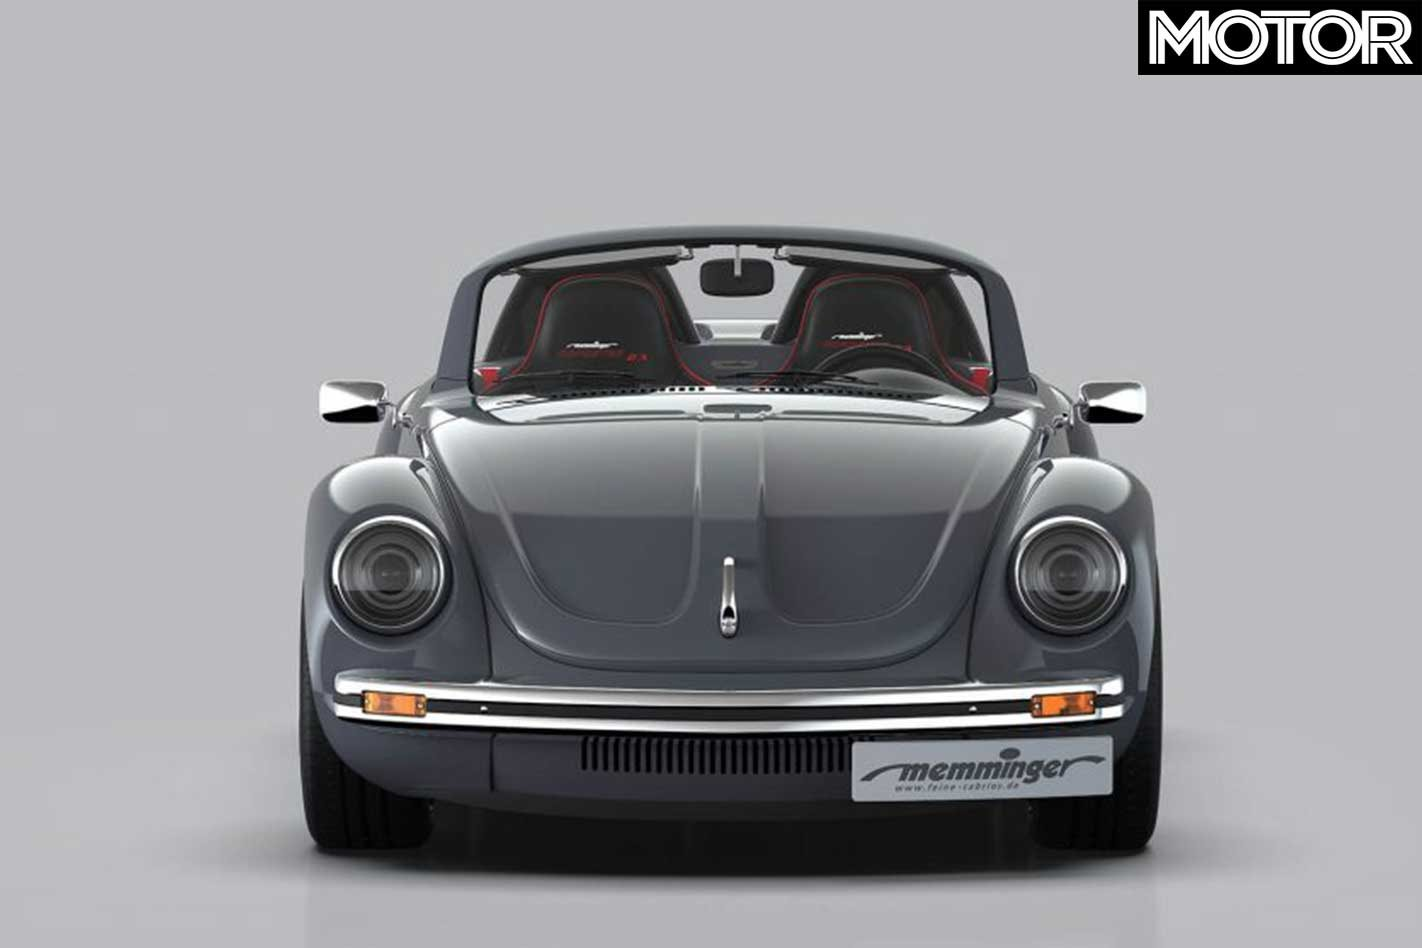 memminger gives vw beetle bigger engine and new face rh whichcar com au 68 Yellow VW Beetle Custom VW Beetle